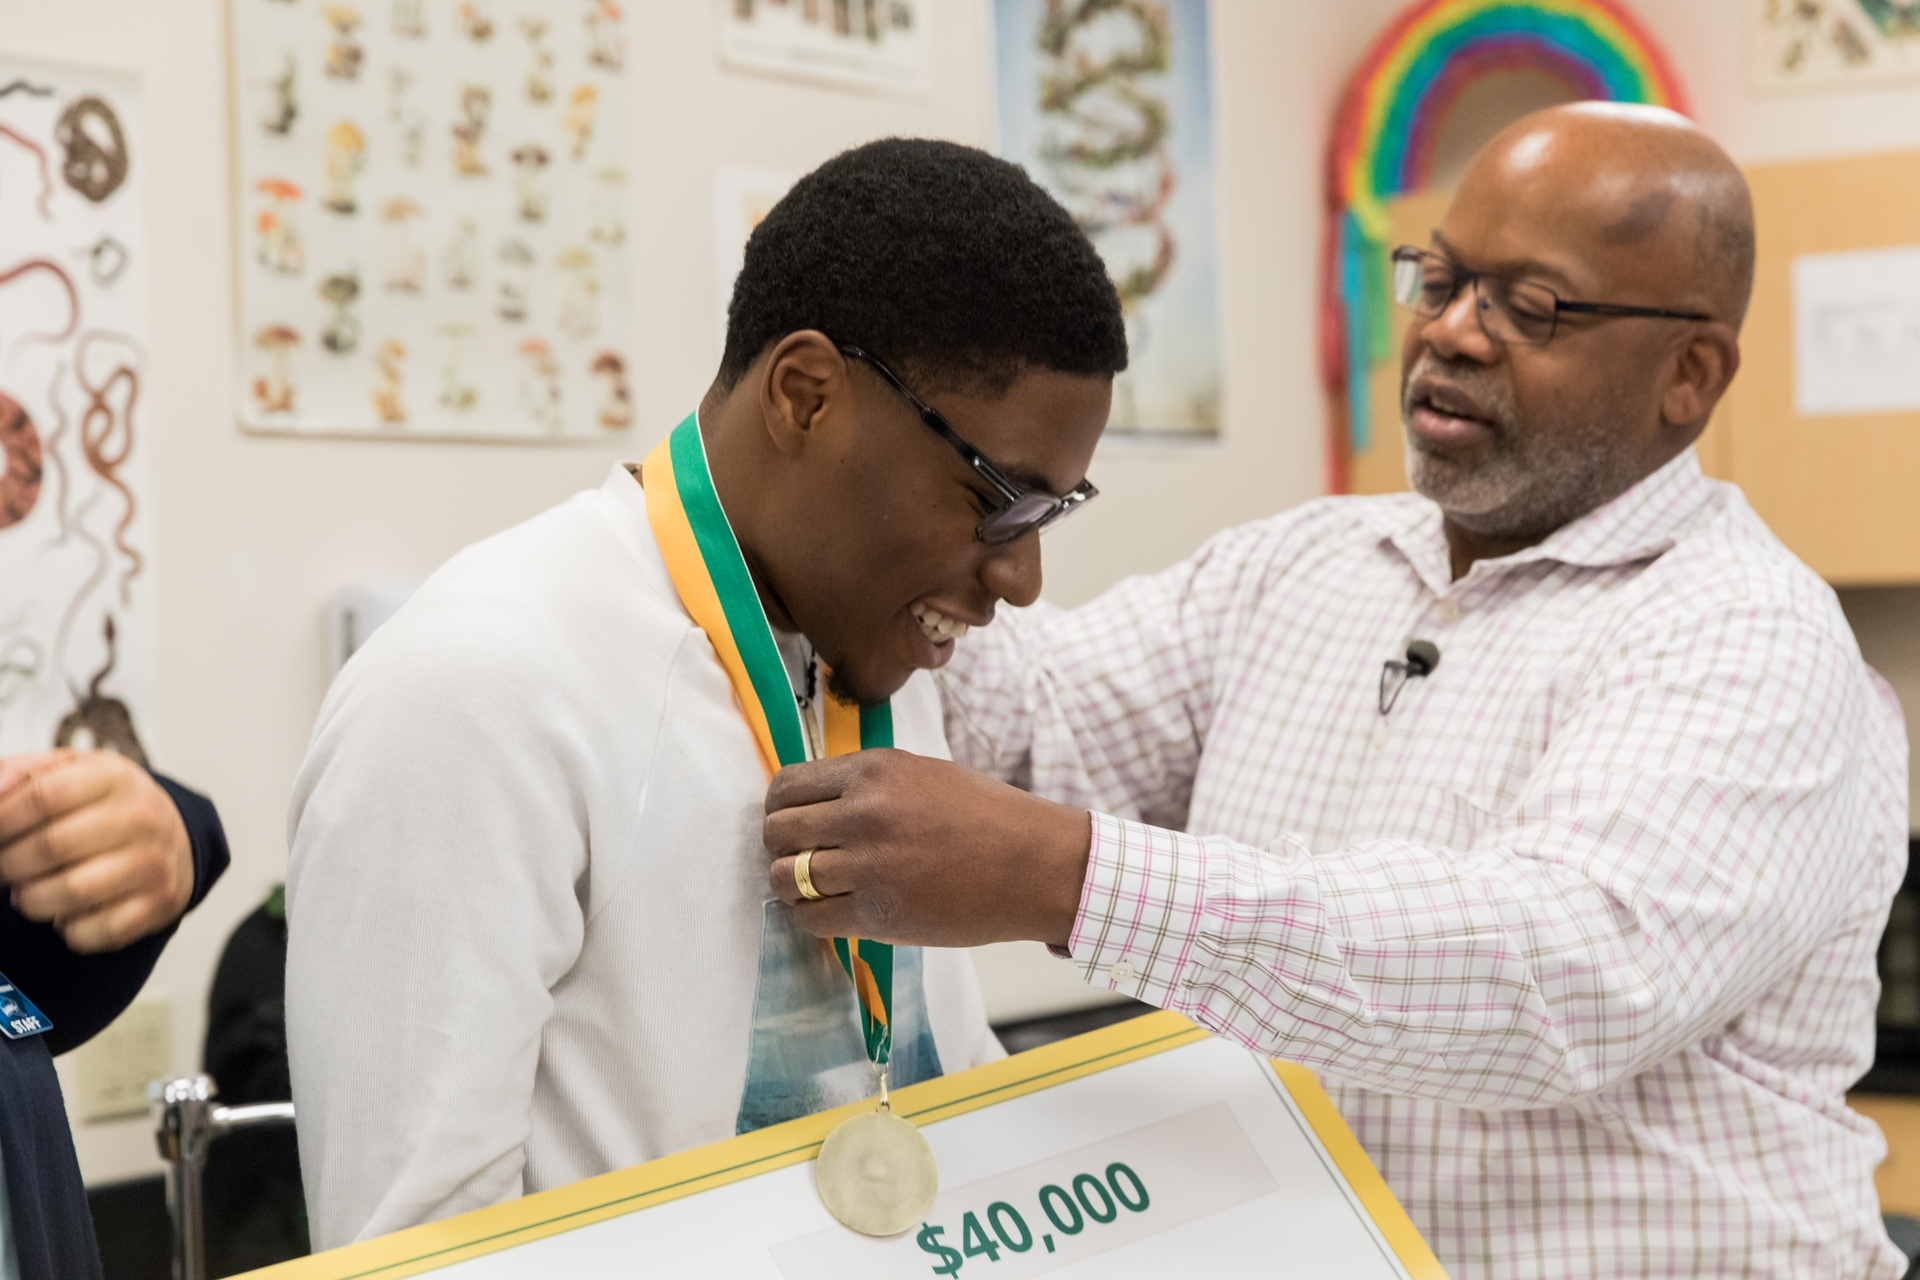 Kevin Walker, SCE vice president, presents Nnaemeka Anyanwu with a 2019 Edison Scholar scholarship.